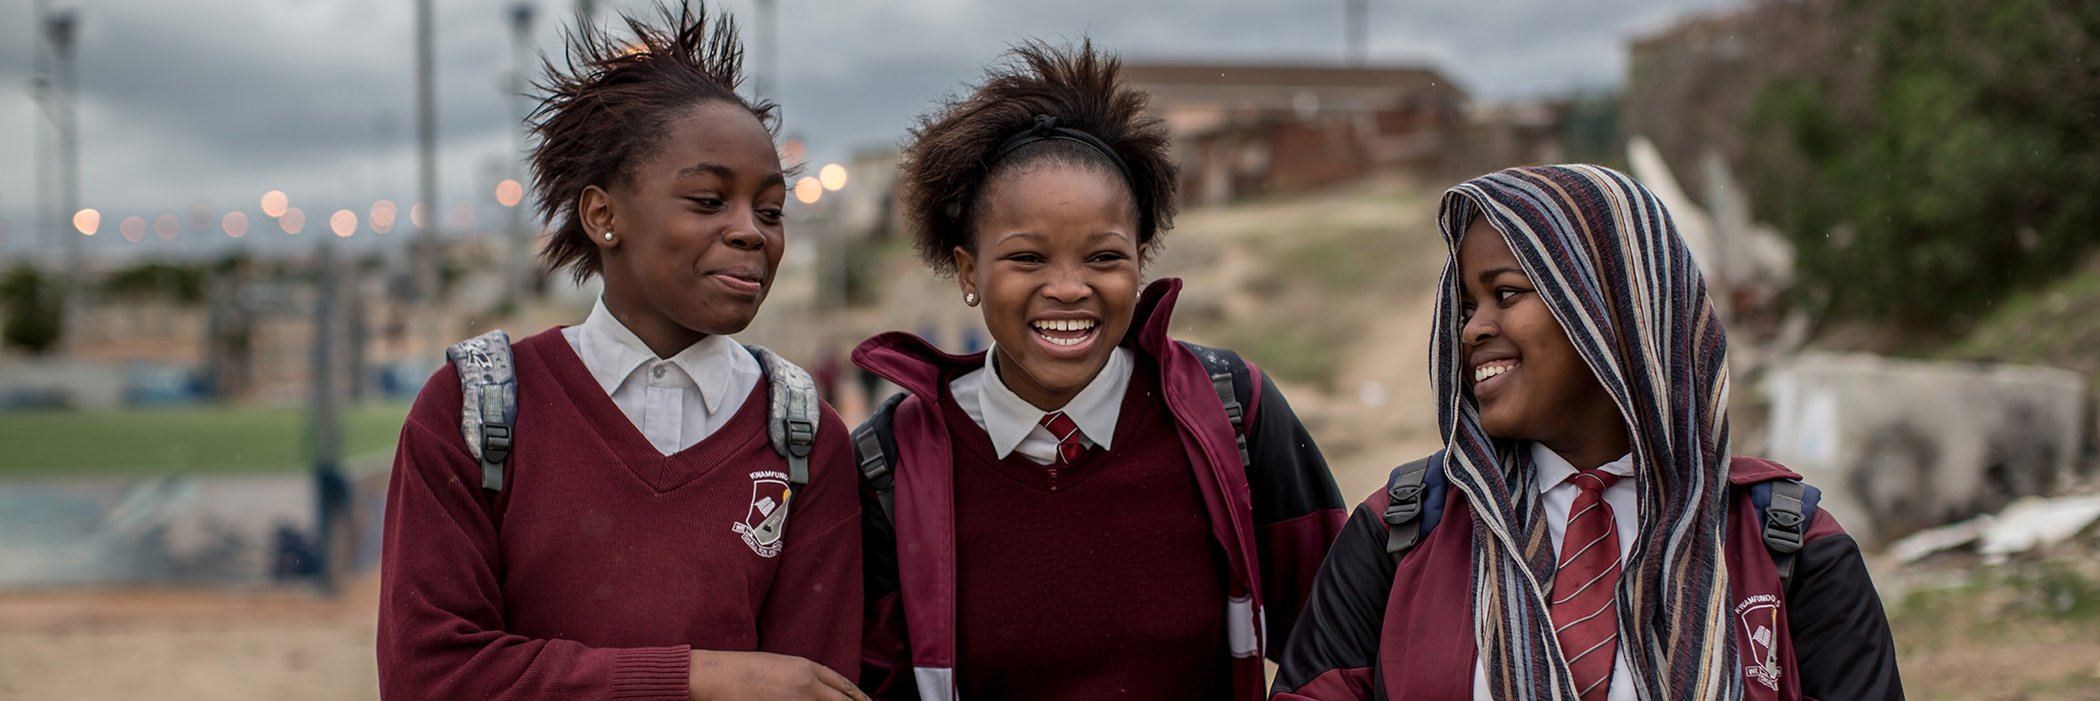 Girls-Empowerment-South-Africa.jpg